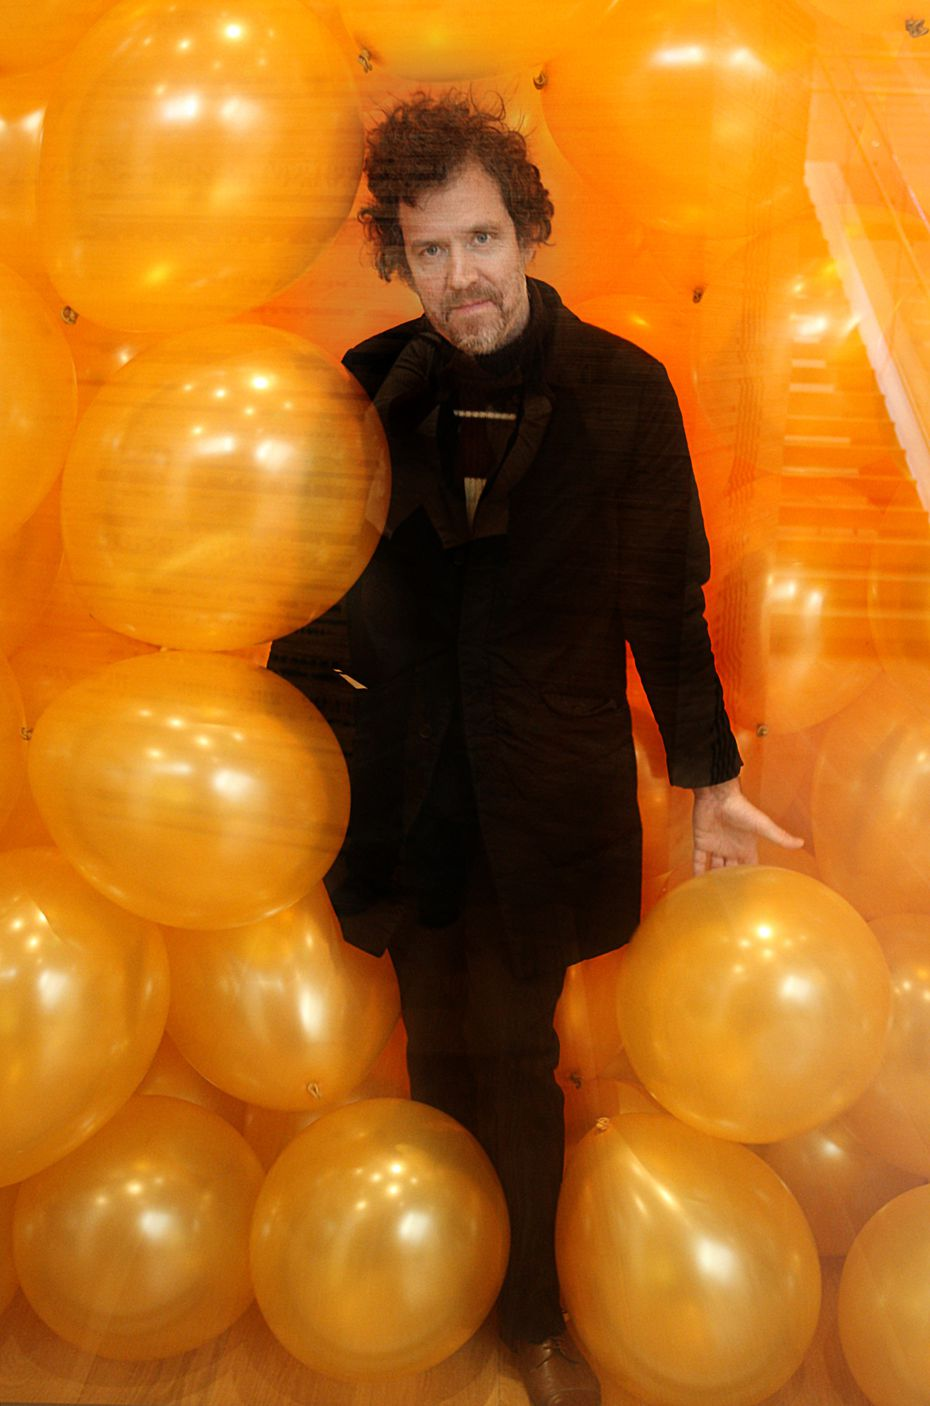 Martin Creed created a room full of balloons at the Nasher Sculpture Center in March 2011.